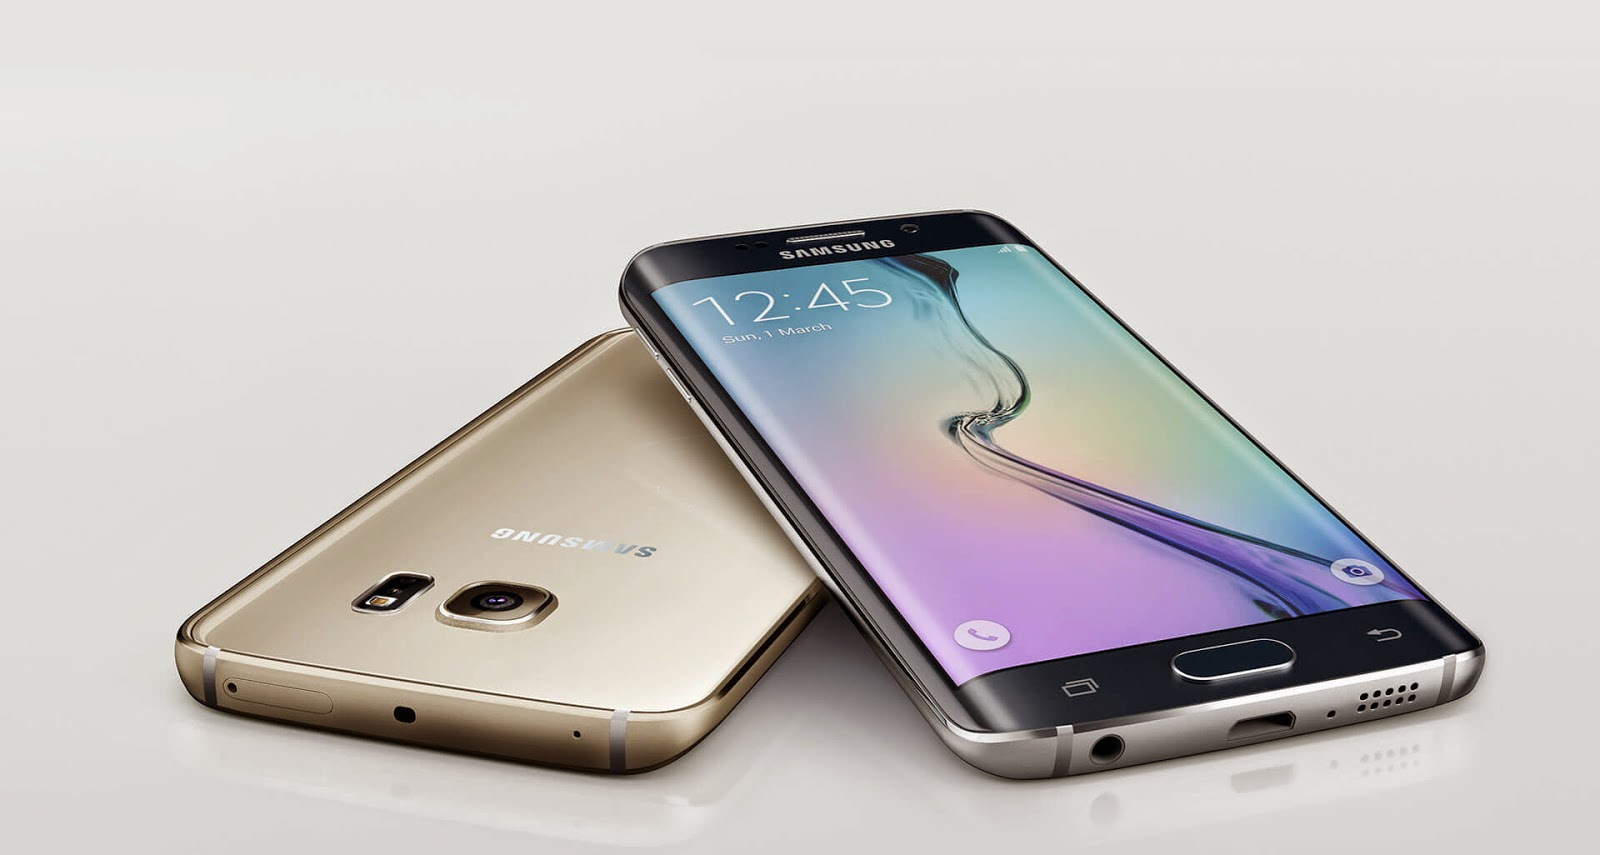 Samsung Galaxy S6 Edge - Highest Specs Android Smartphones in 2015